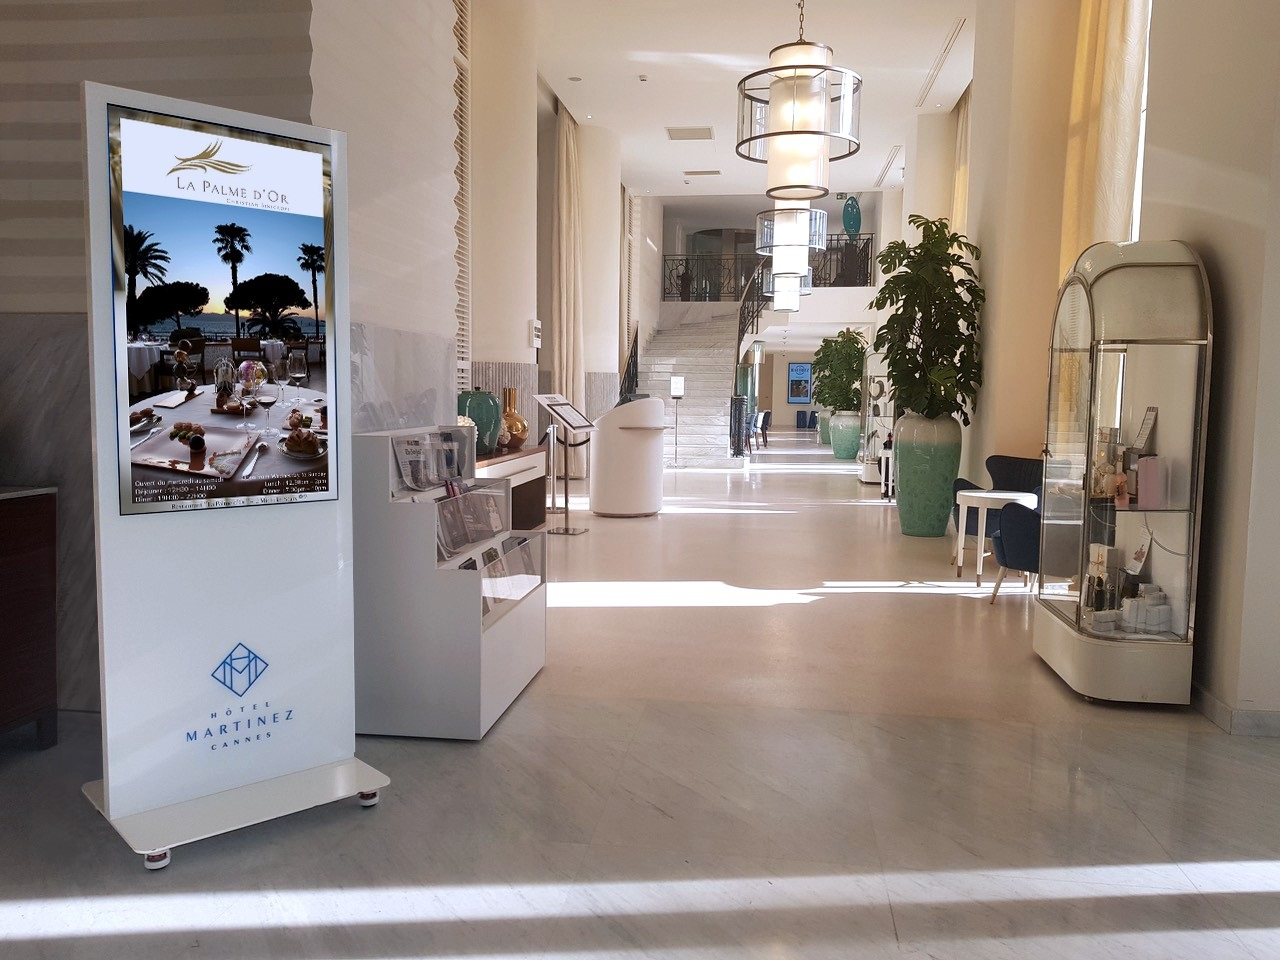 Luxury Cannes Hotel Gets All Inclusive Philips Digital Signage